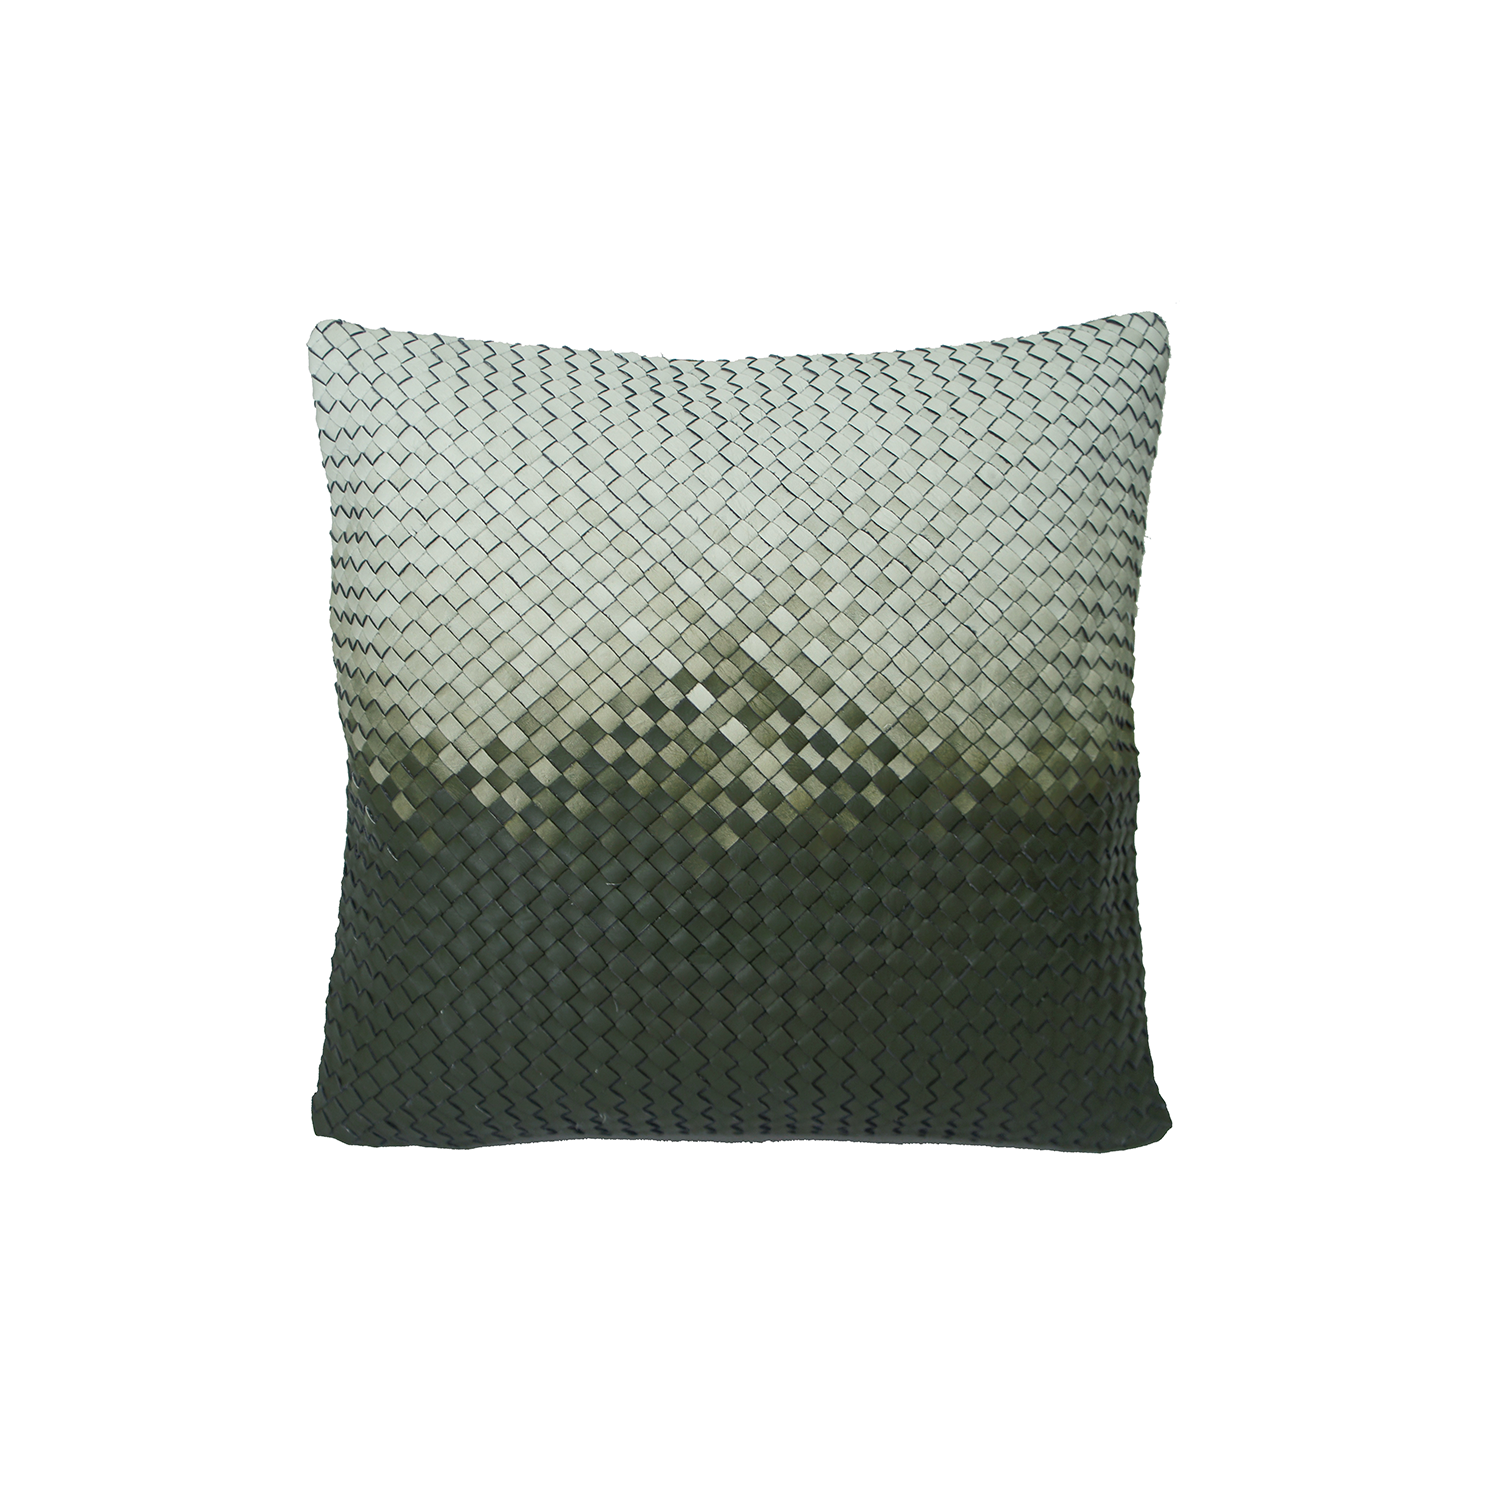 Tresse Degrade Diagonal Woven Leather Cushion Square - Tresse Degrade Diagonal Woven Leather Cushion is designed to complement an ambient with a natural and sophisticated feeling. This cushion style is available in pleated leather or pleated suede leather. Elisa Atheniense woven handmade leather cushions are specially manufactured in Brazil using an exclusive treated leather that brings the soft feel touch to every single piece.   The front panel is handwoven in leather and the back panel is 100% Pes, made in Brazil.  The inner cushion is available in Hollow Fibre and European Duck Feathers, made in the UK.  Please enquire for more information and see colour chart for reference.   | Matter of Stuff